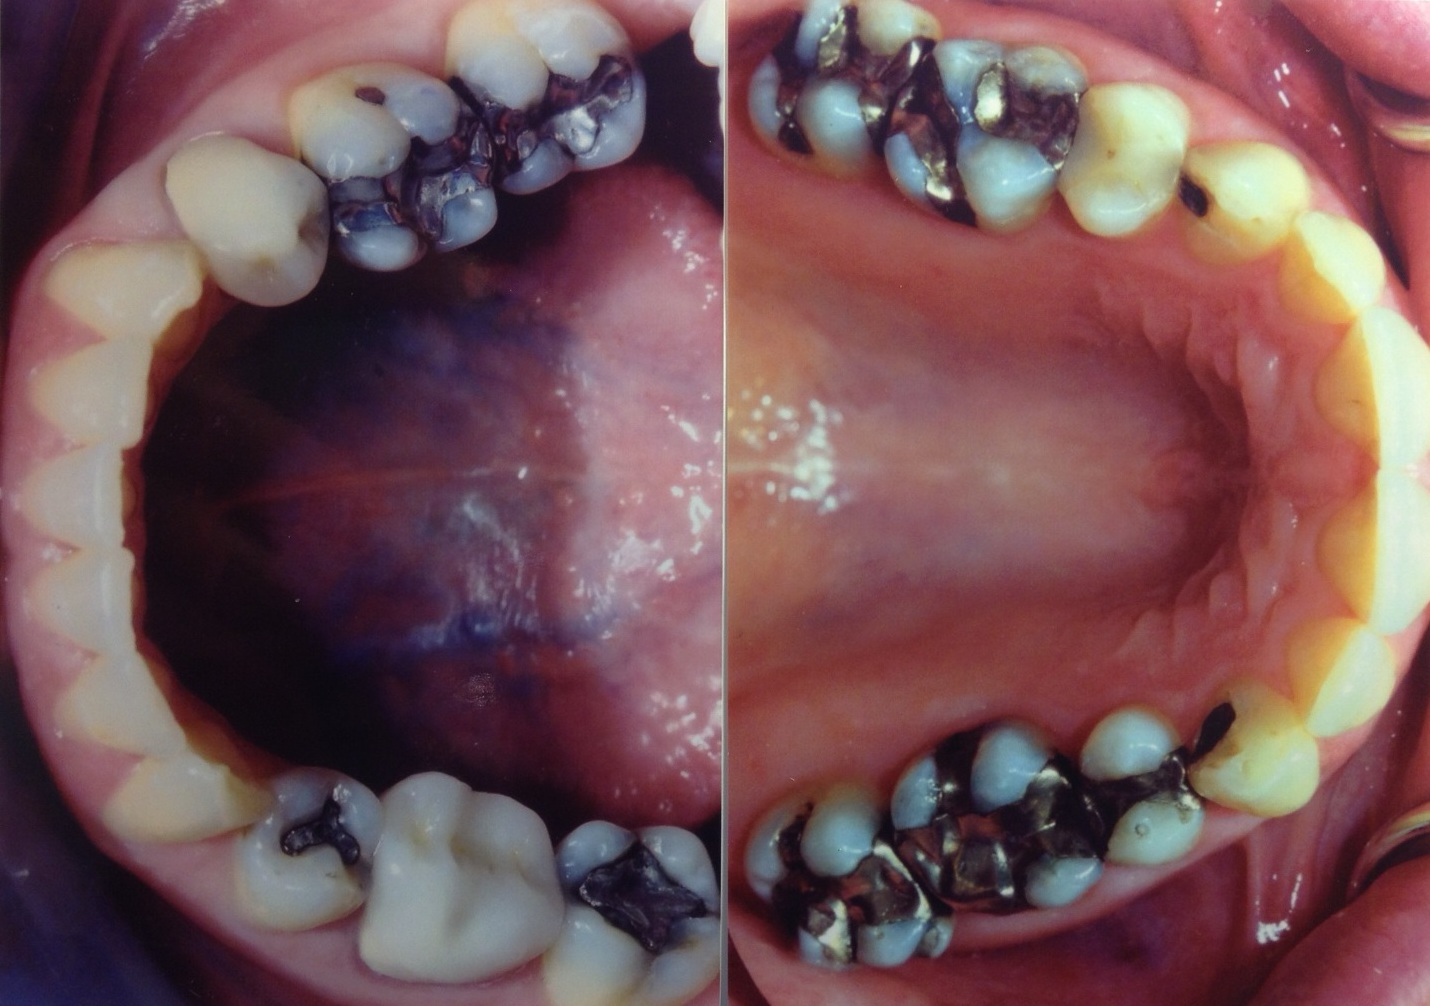 Before:  Patient's teeth were previously treated with amalgam fillings.